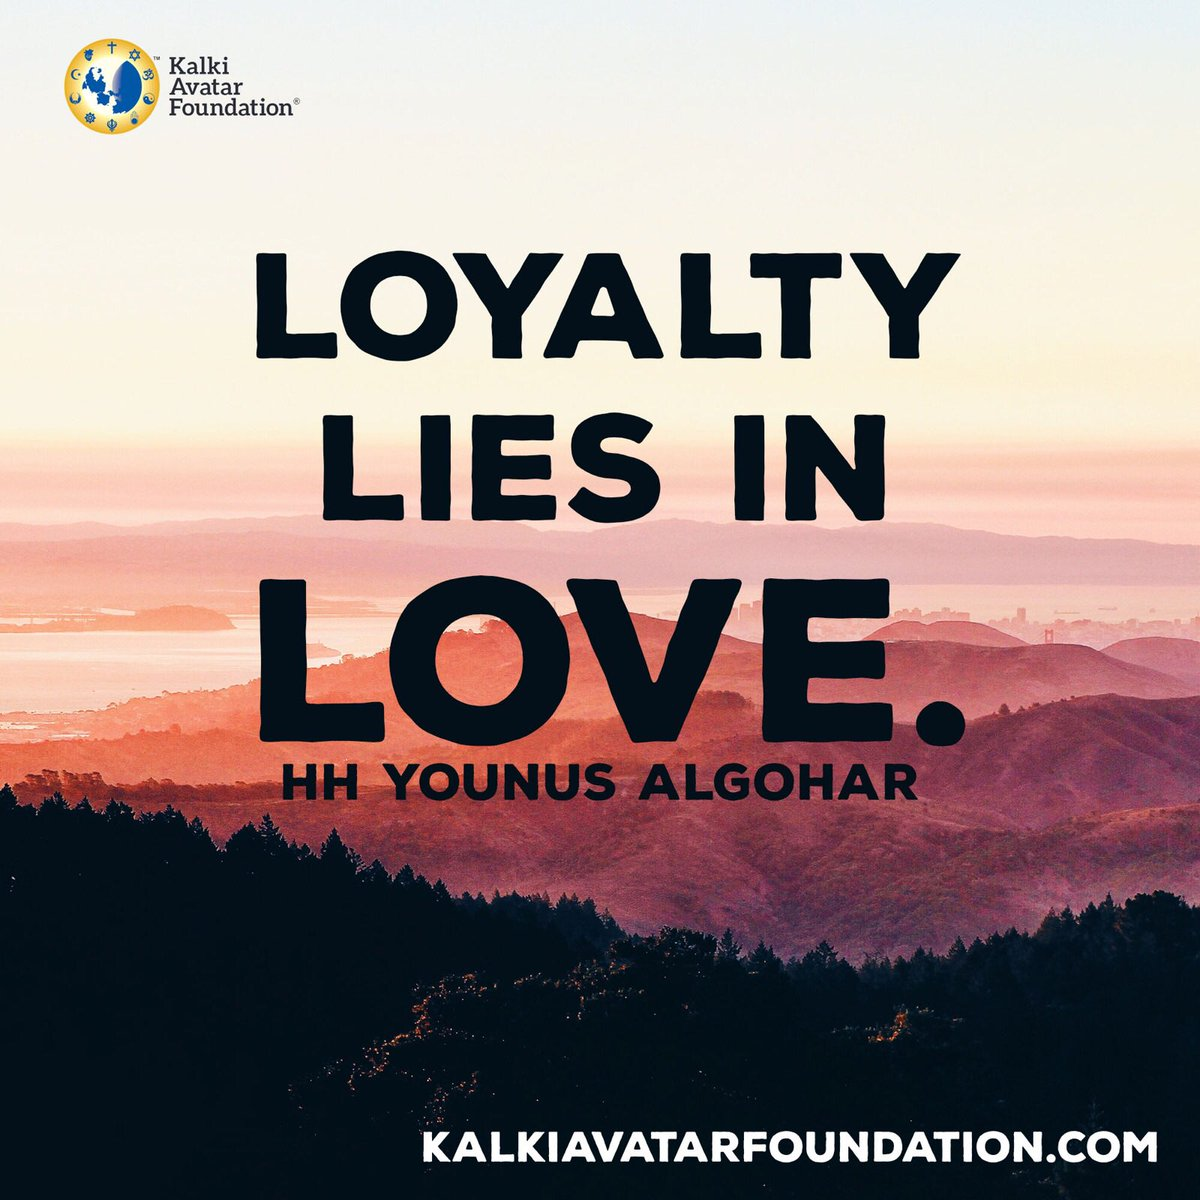 "Divine Love Quotes: Kalki Avatar Fdn. On Twitter: ""#Quoteoftheday 'Loyalty"